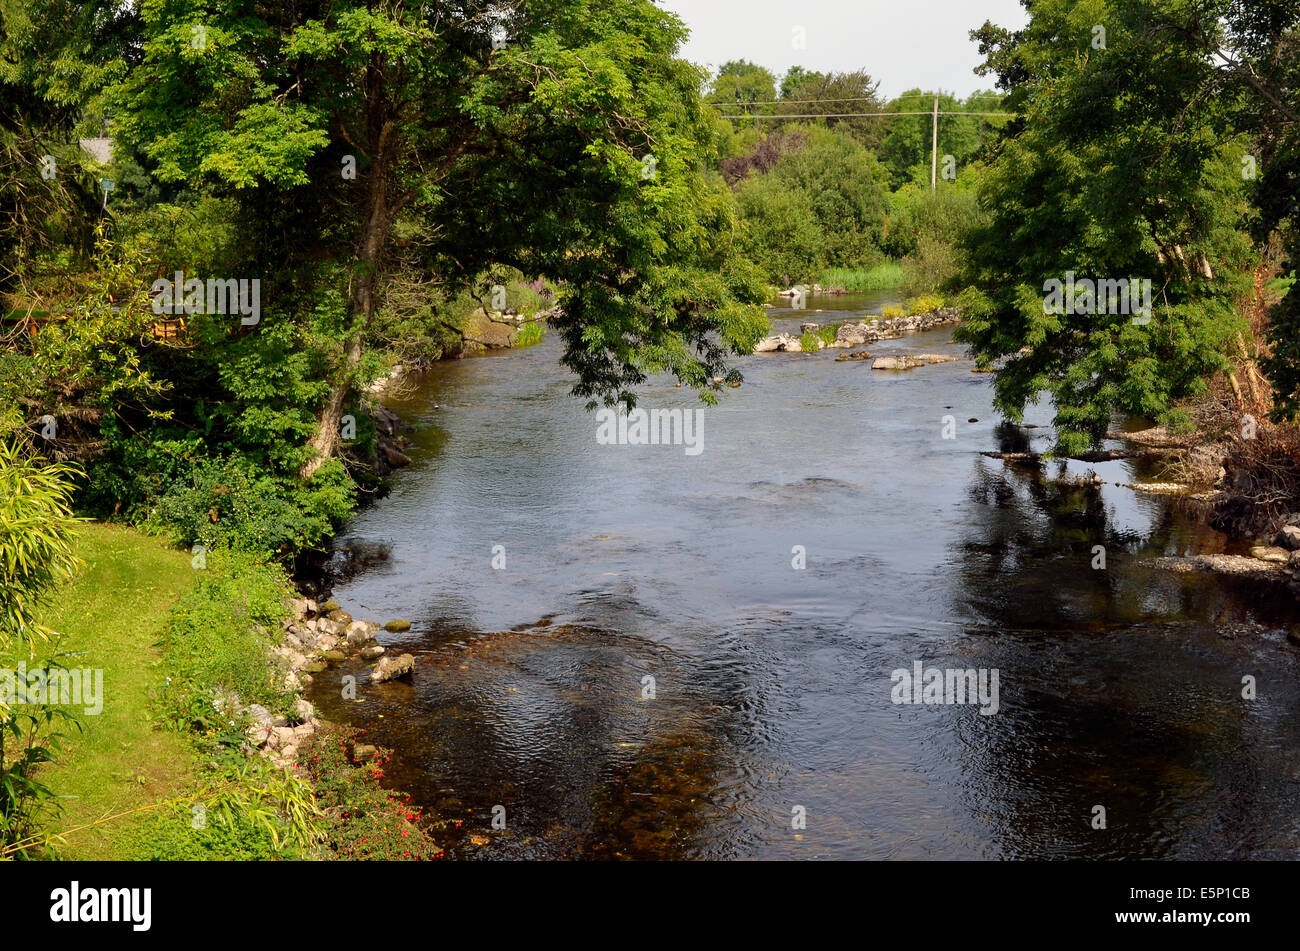 Peaceful scene on the River Cong, in Cong, County Mayo, Ireland - Stock Image